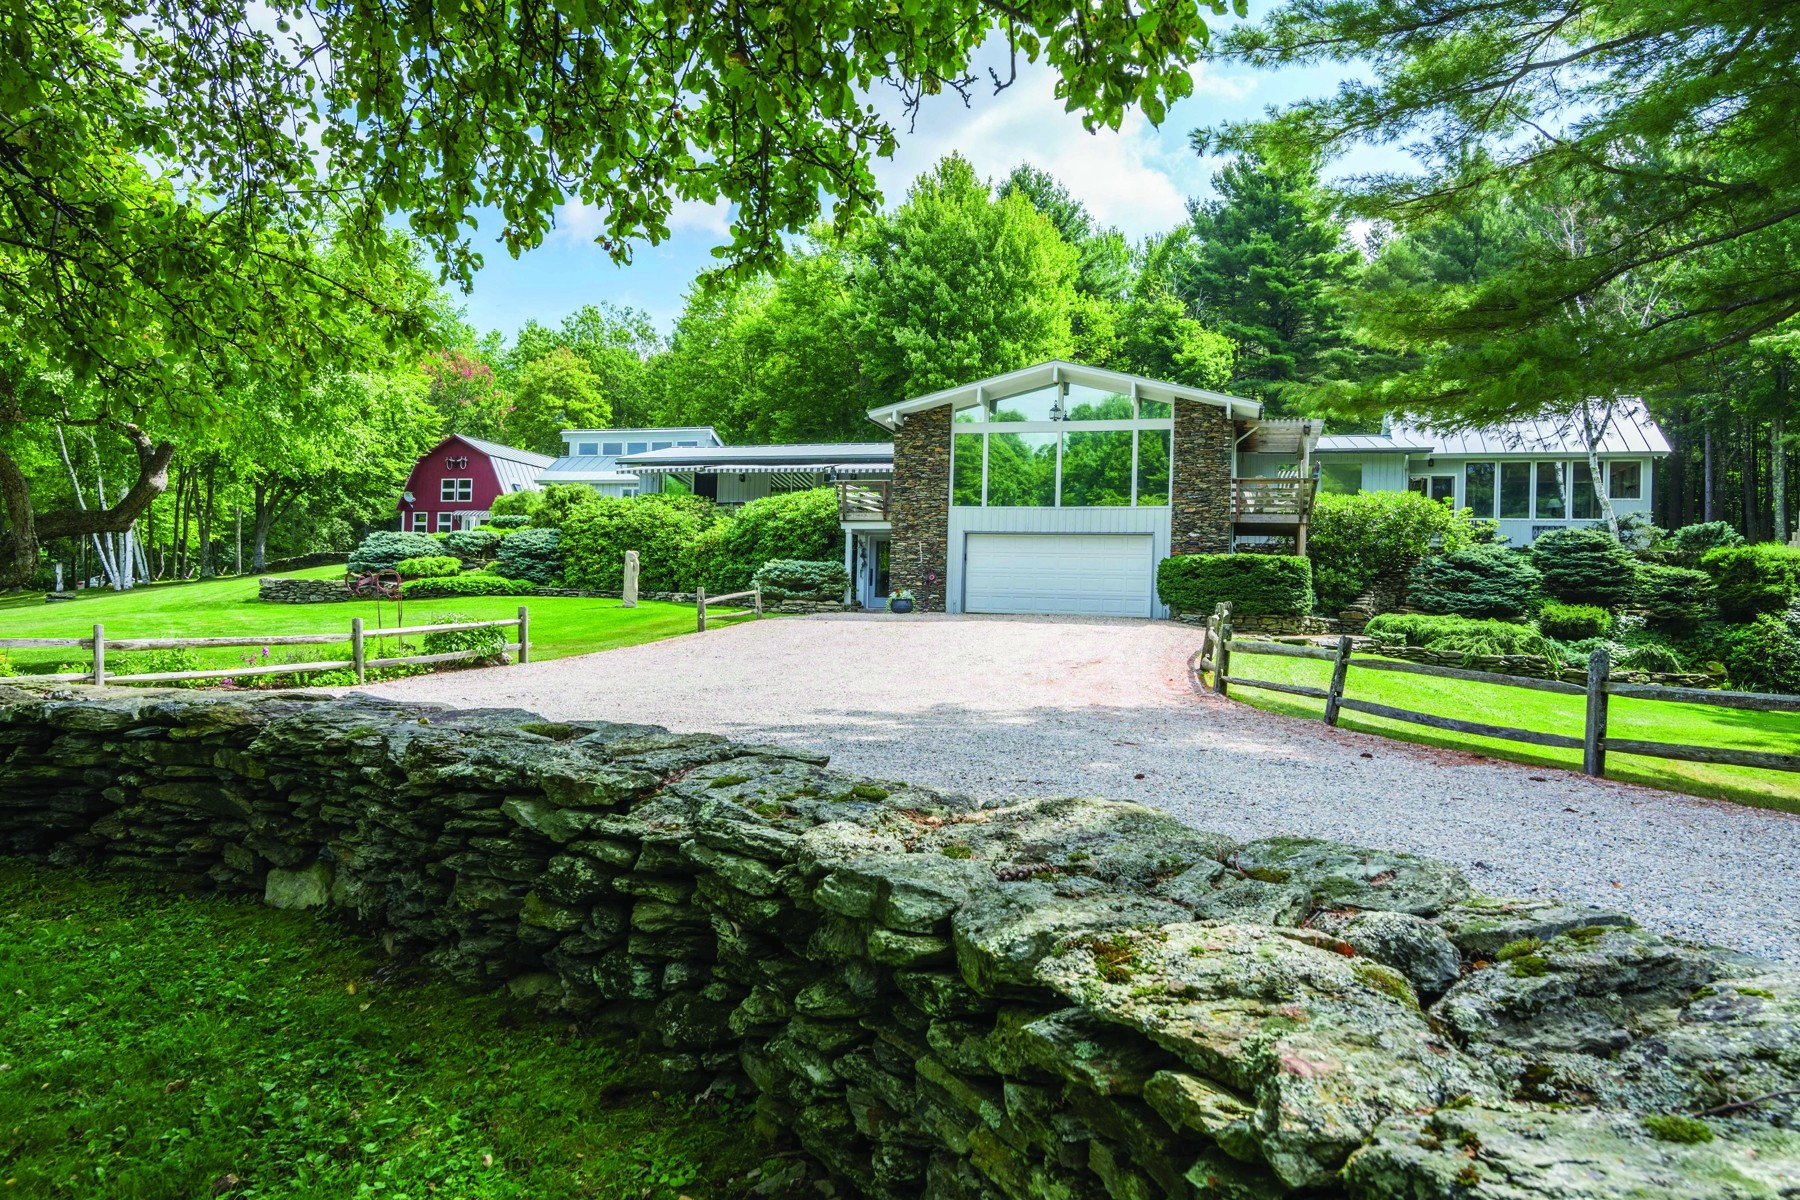 Casa Unifamiliar por un Venta en Contemporary Luxury on 31 Park-Like Acres 427 Forrest Farm Rd Pawlet, Vermont 05761 Estados Unidos